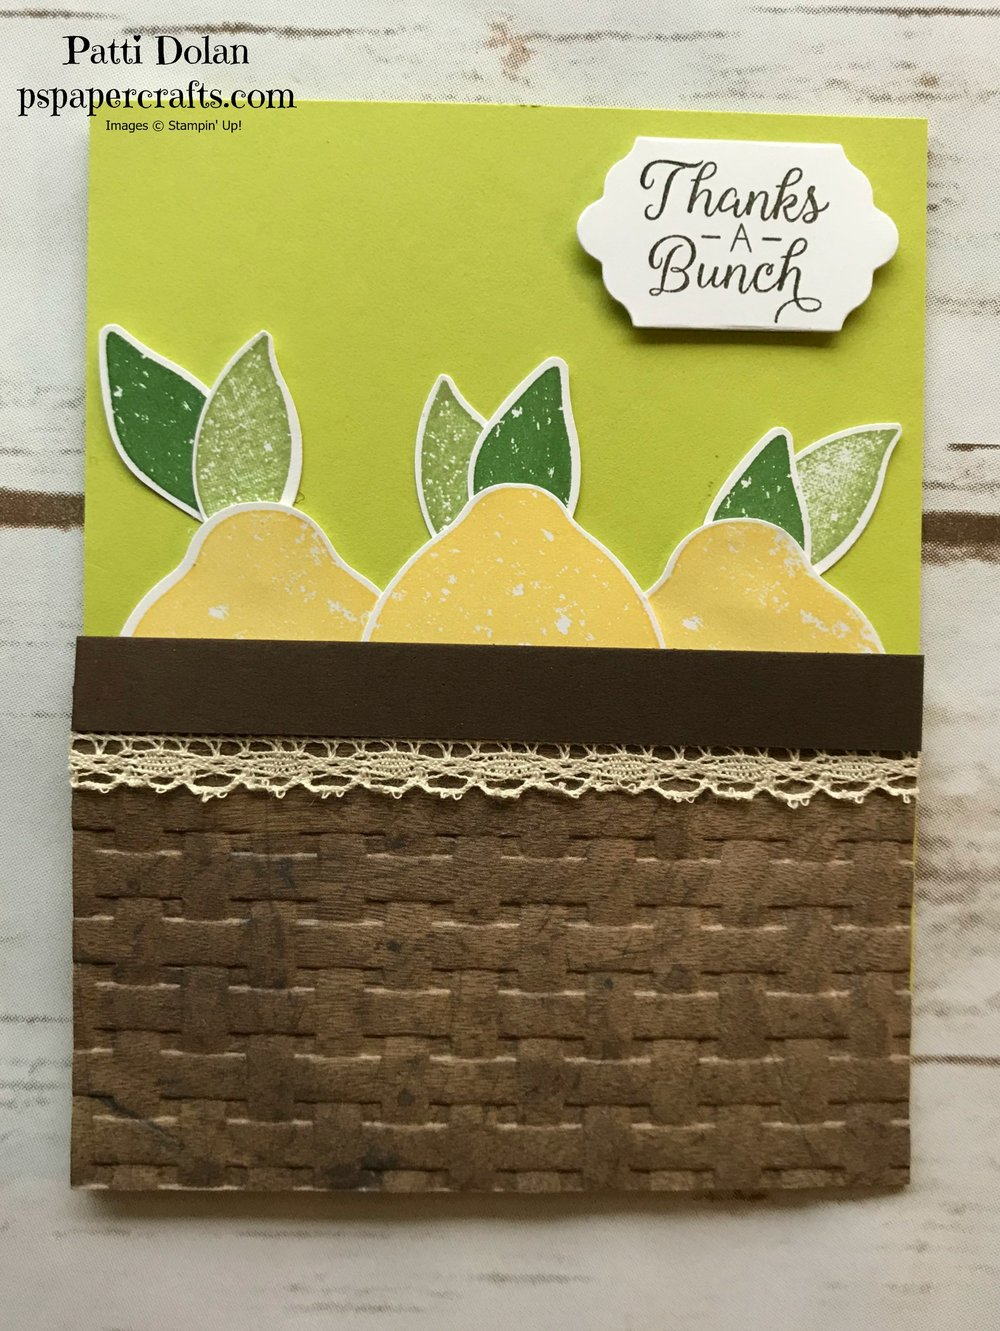 Thanks a Bunch Lemon Basket Card Vertical.jpg